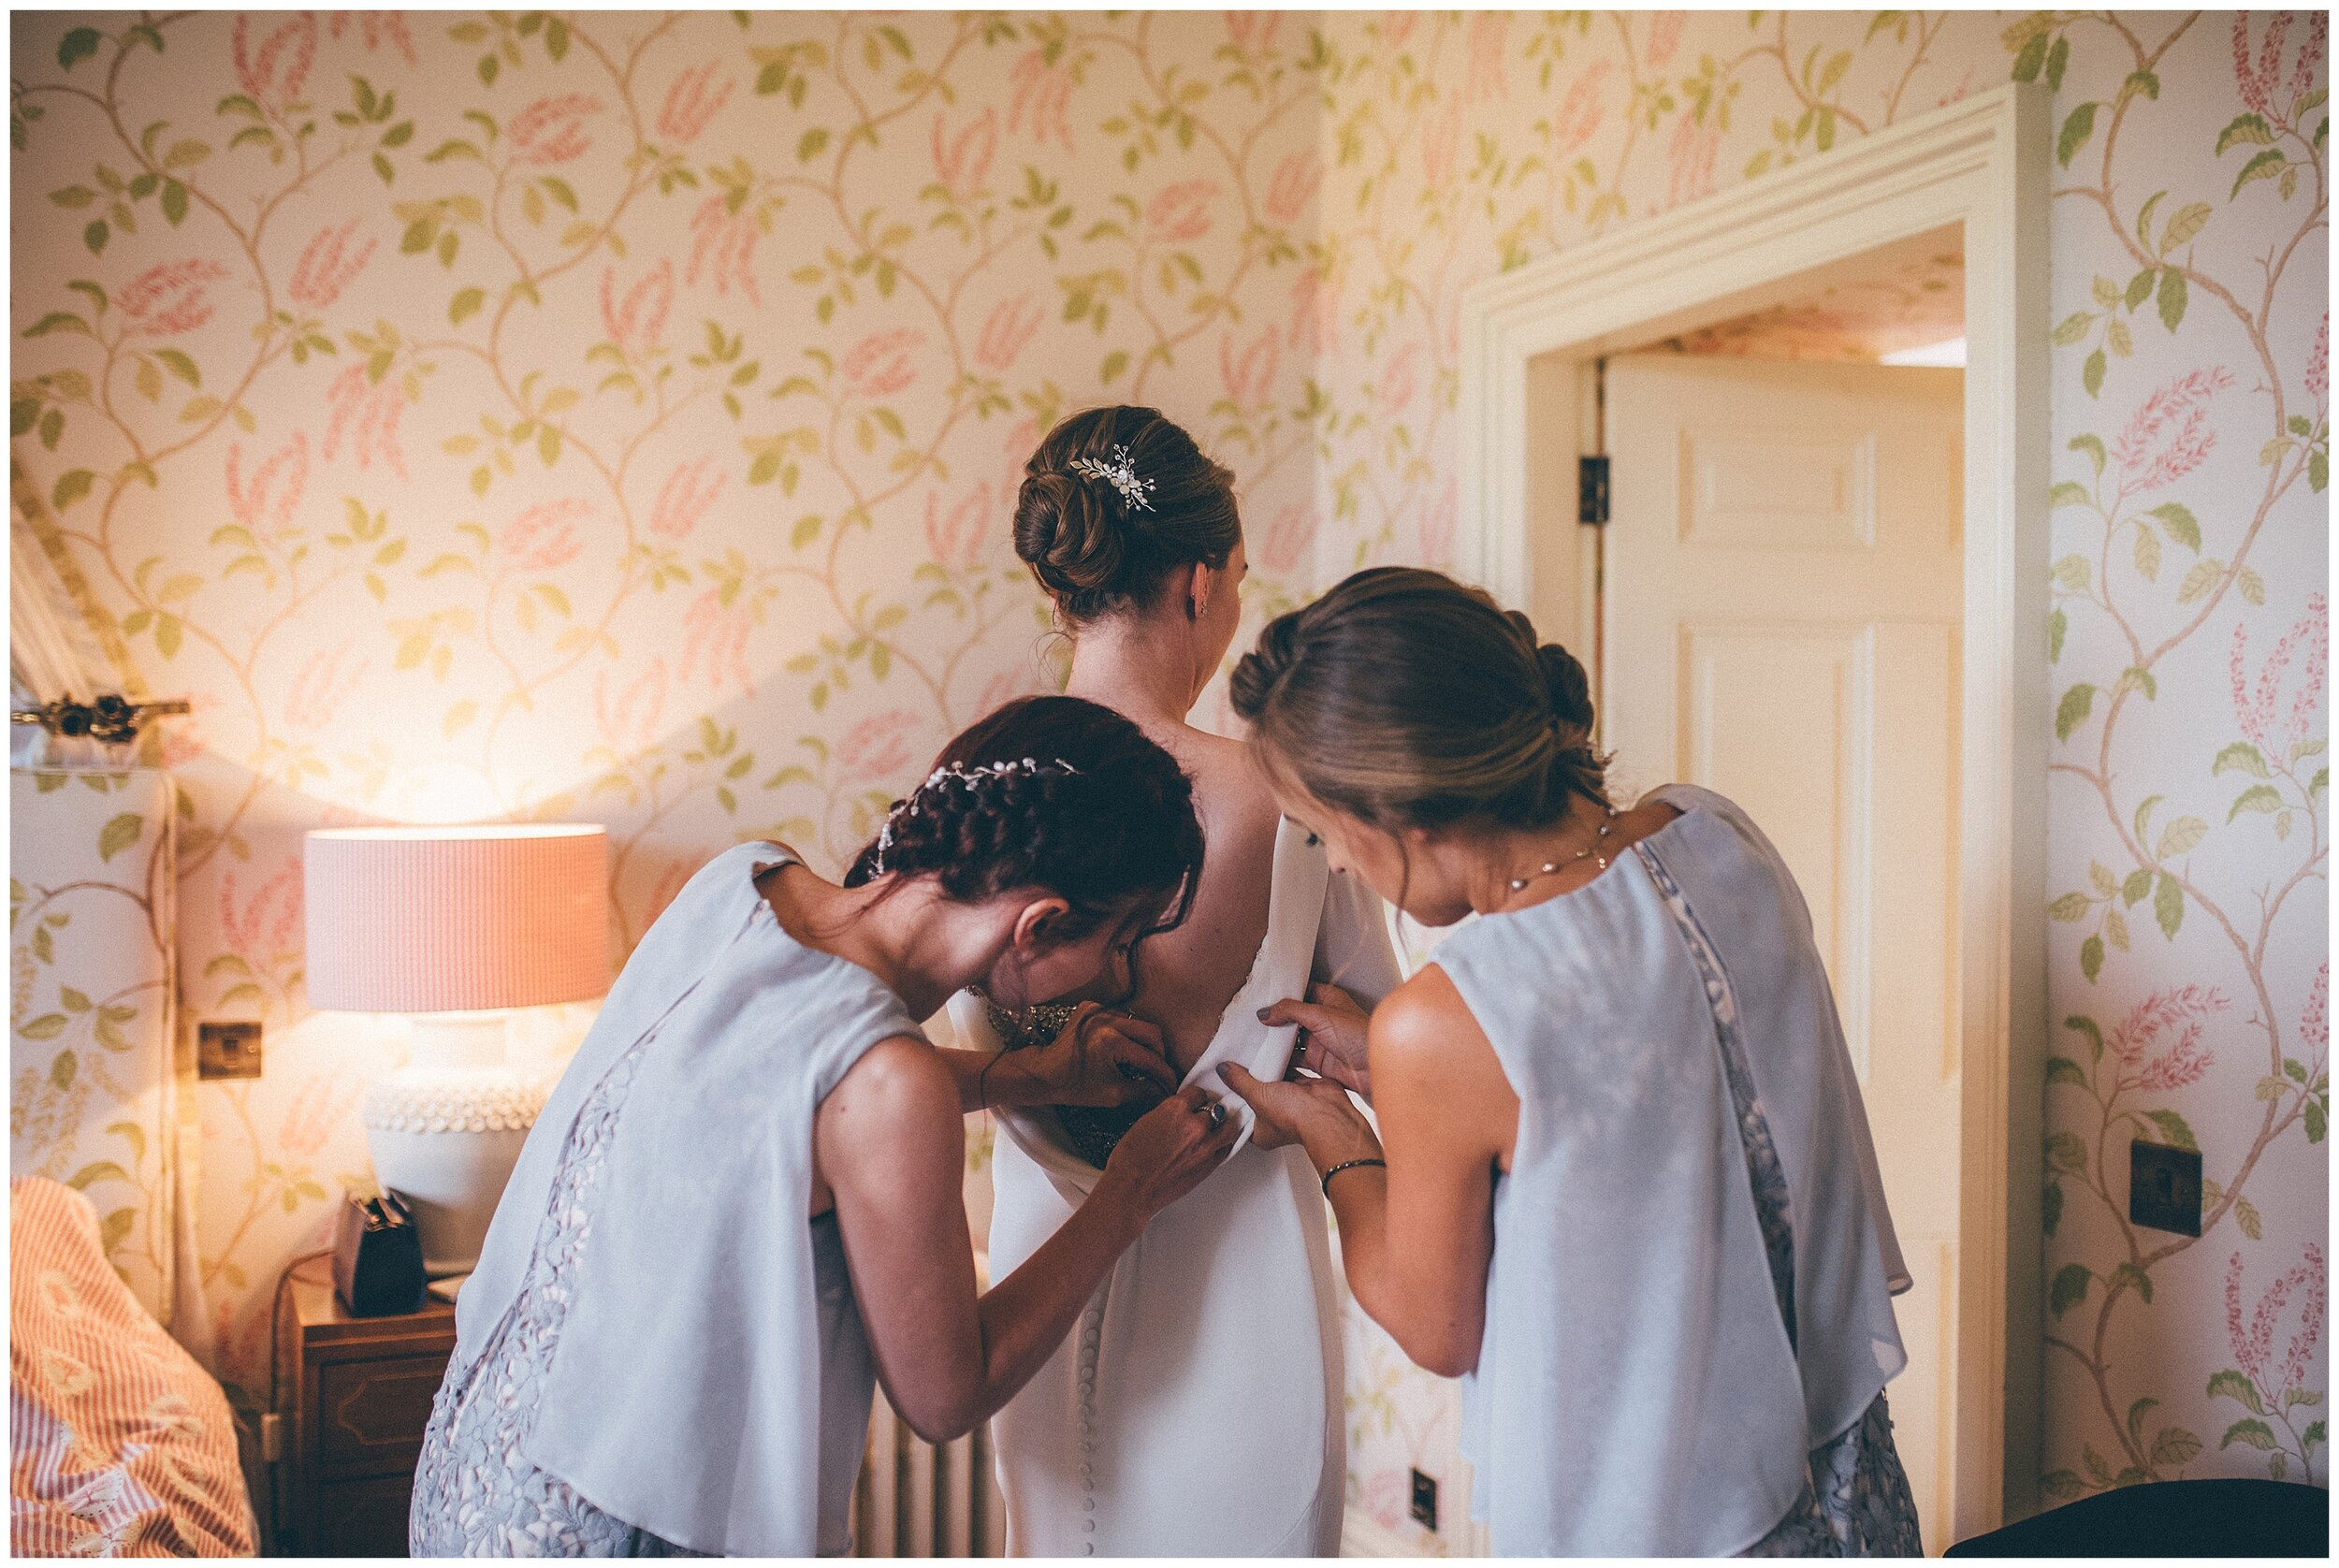 Bridesmaids wearing grey bridesmaid dresses help the bride into her Pronovias gown.